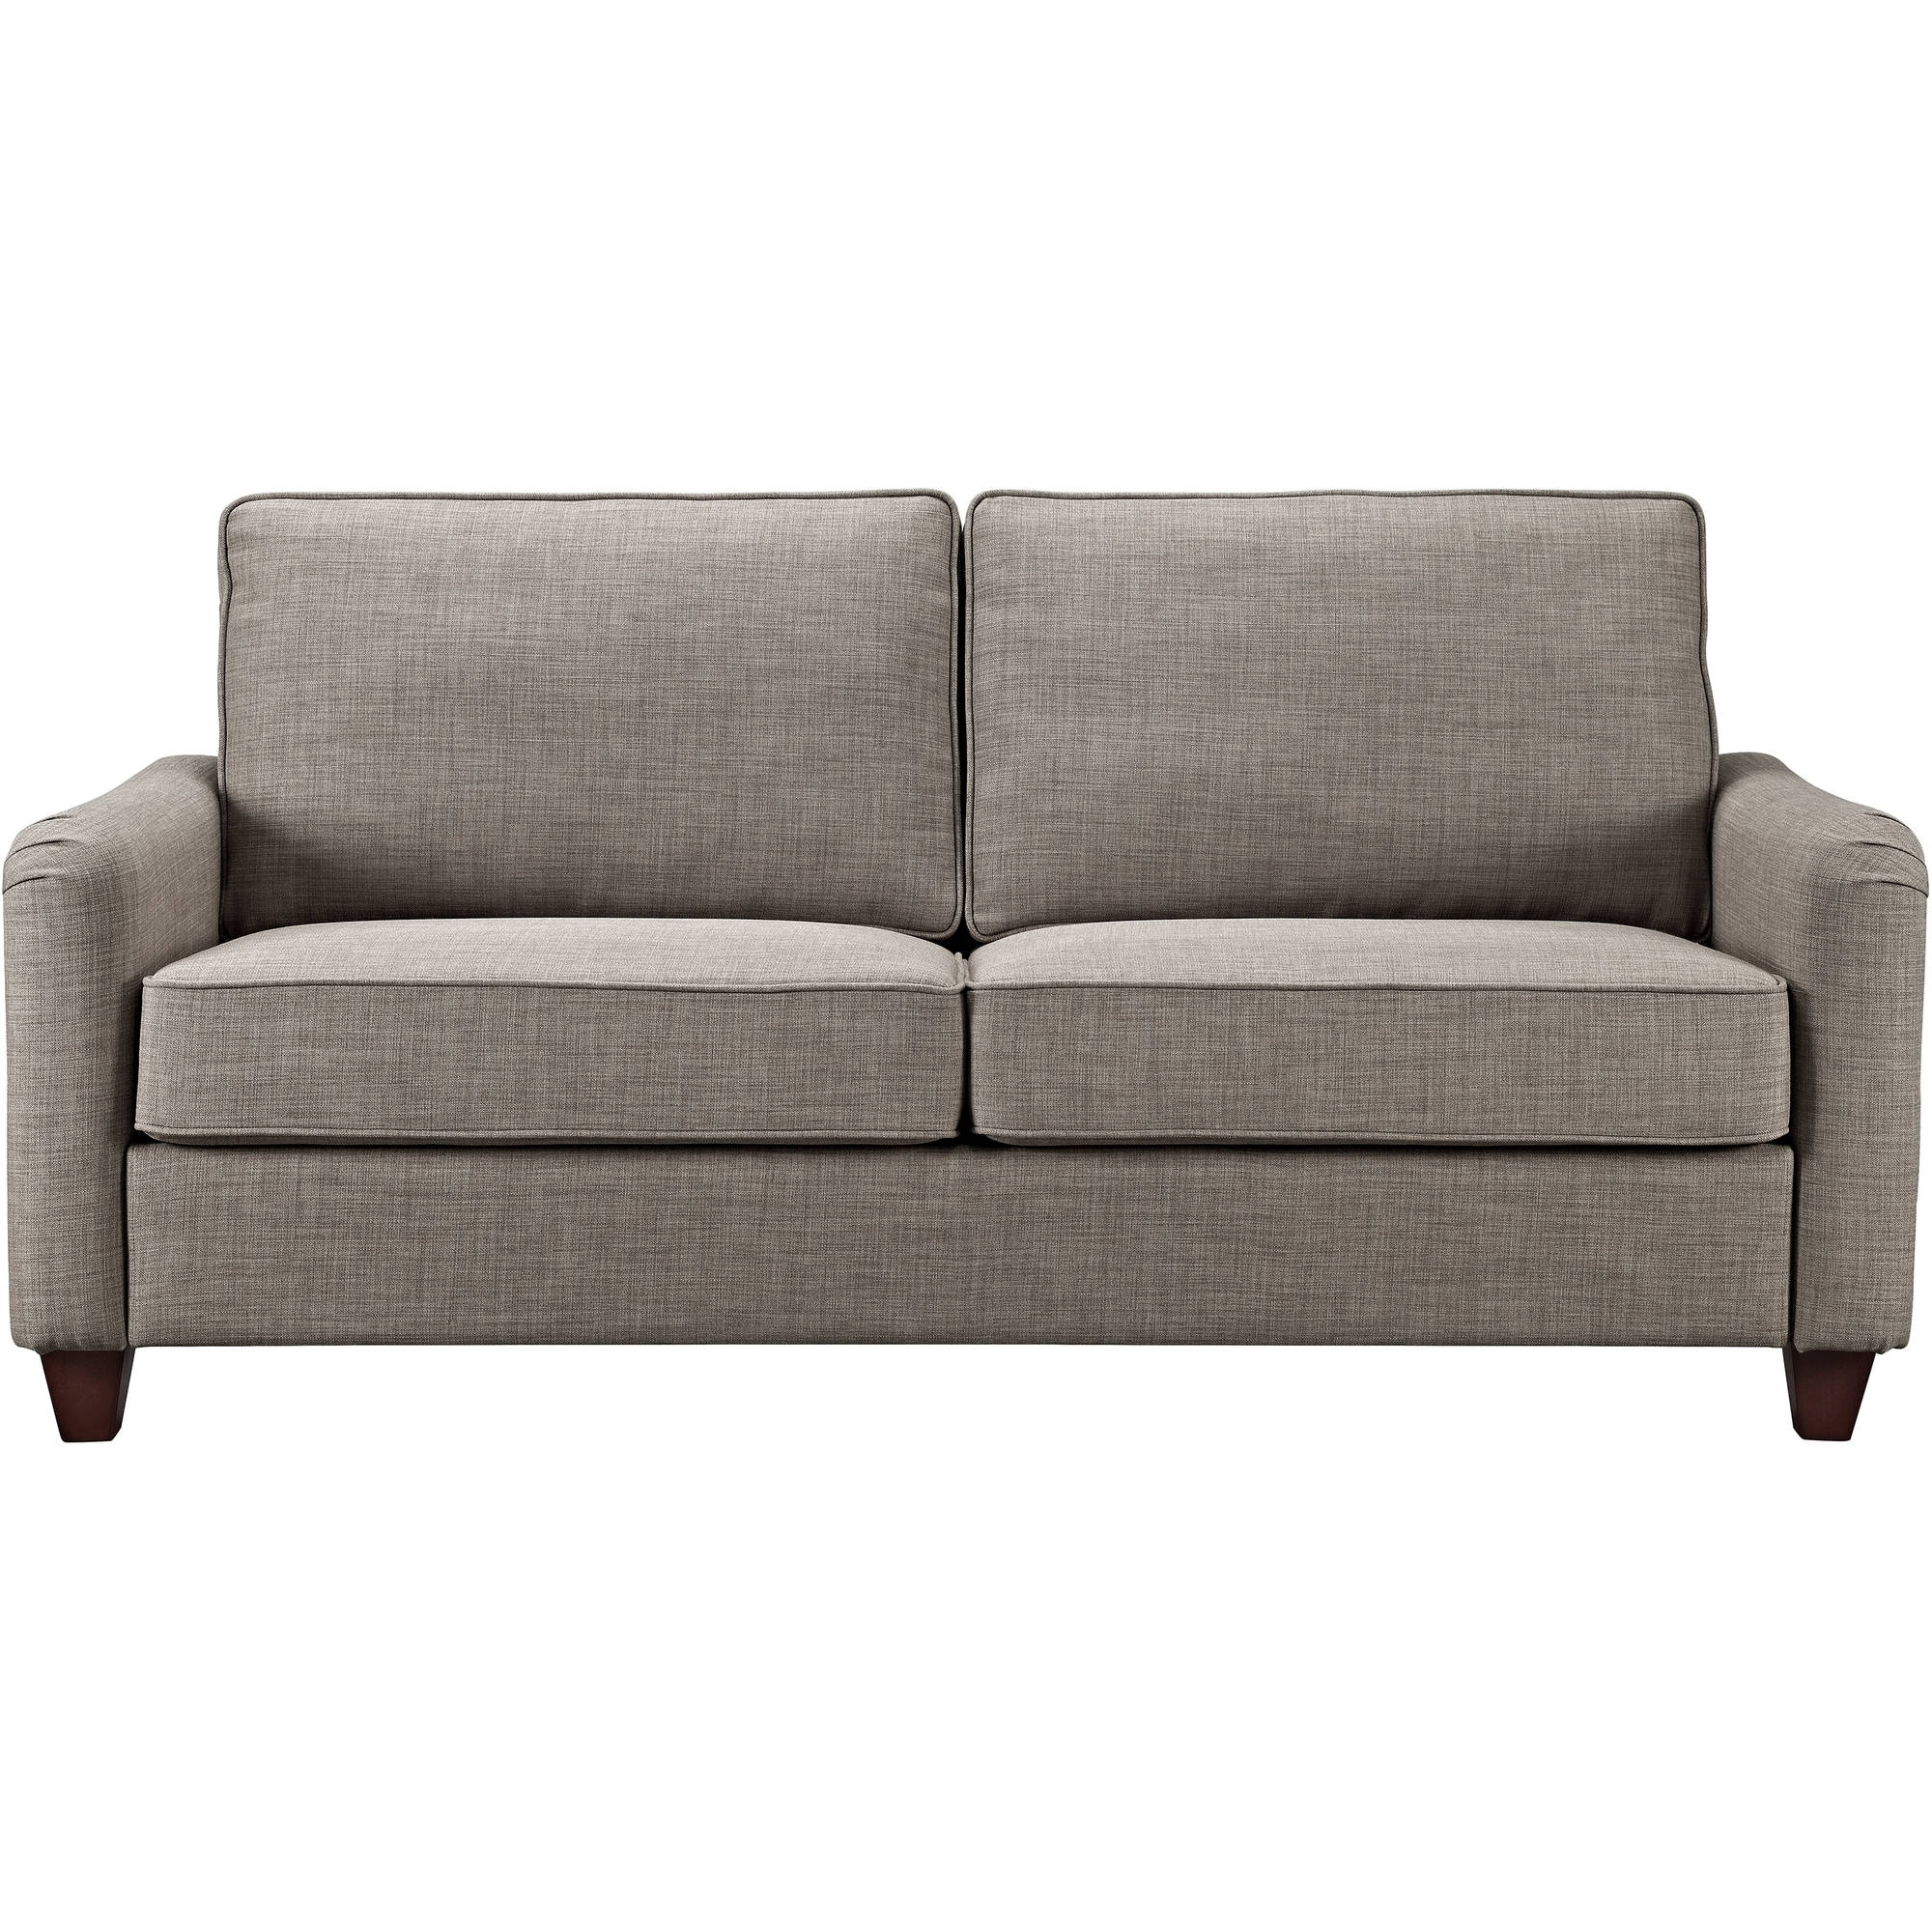 Sofas & Couches – Walmart Throughout Most Recent Roanoke Va Sectional Sofas (View 15 of 20)